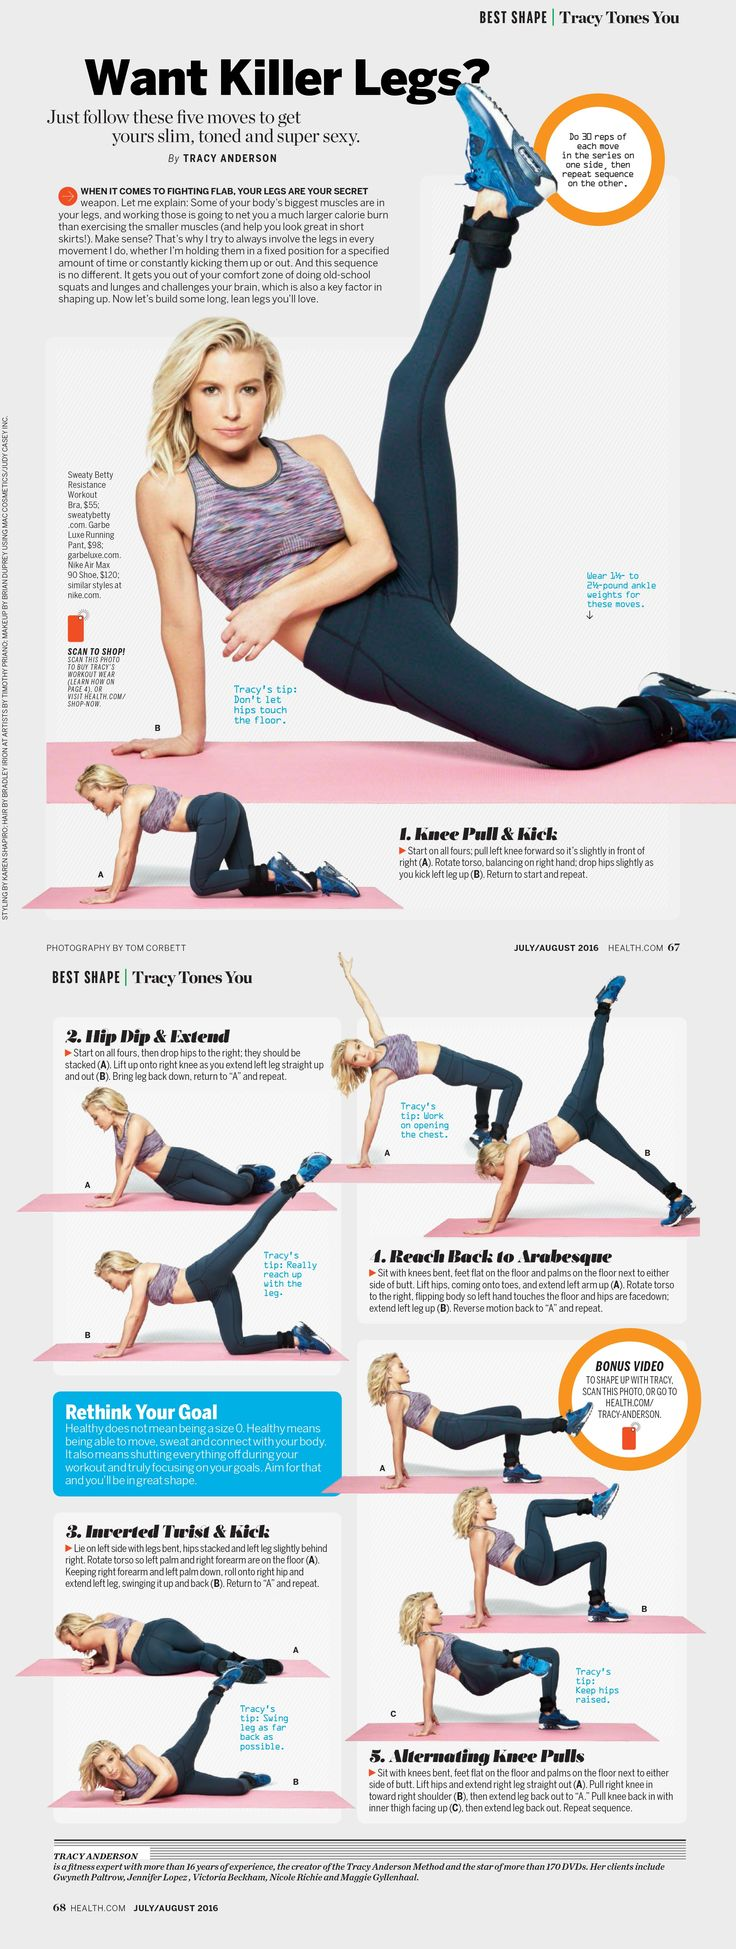 Tracy Anderson - Want Killer Legs? Health.com                                                                                                                                                                                 More